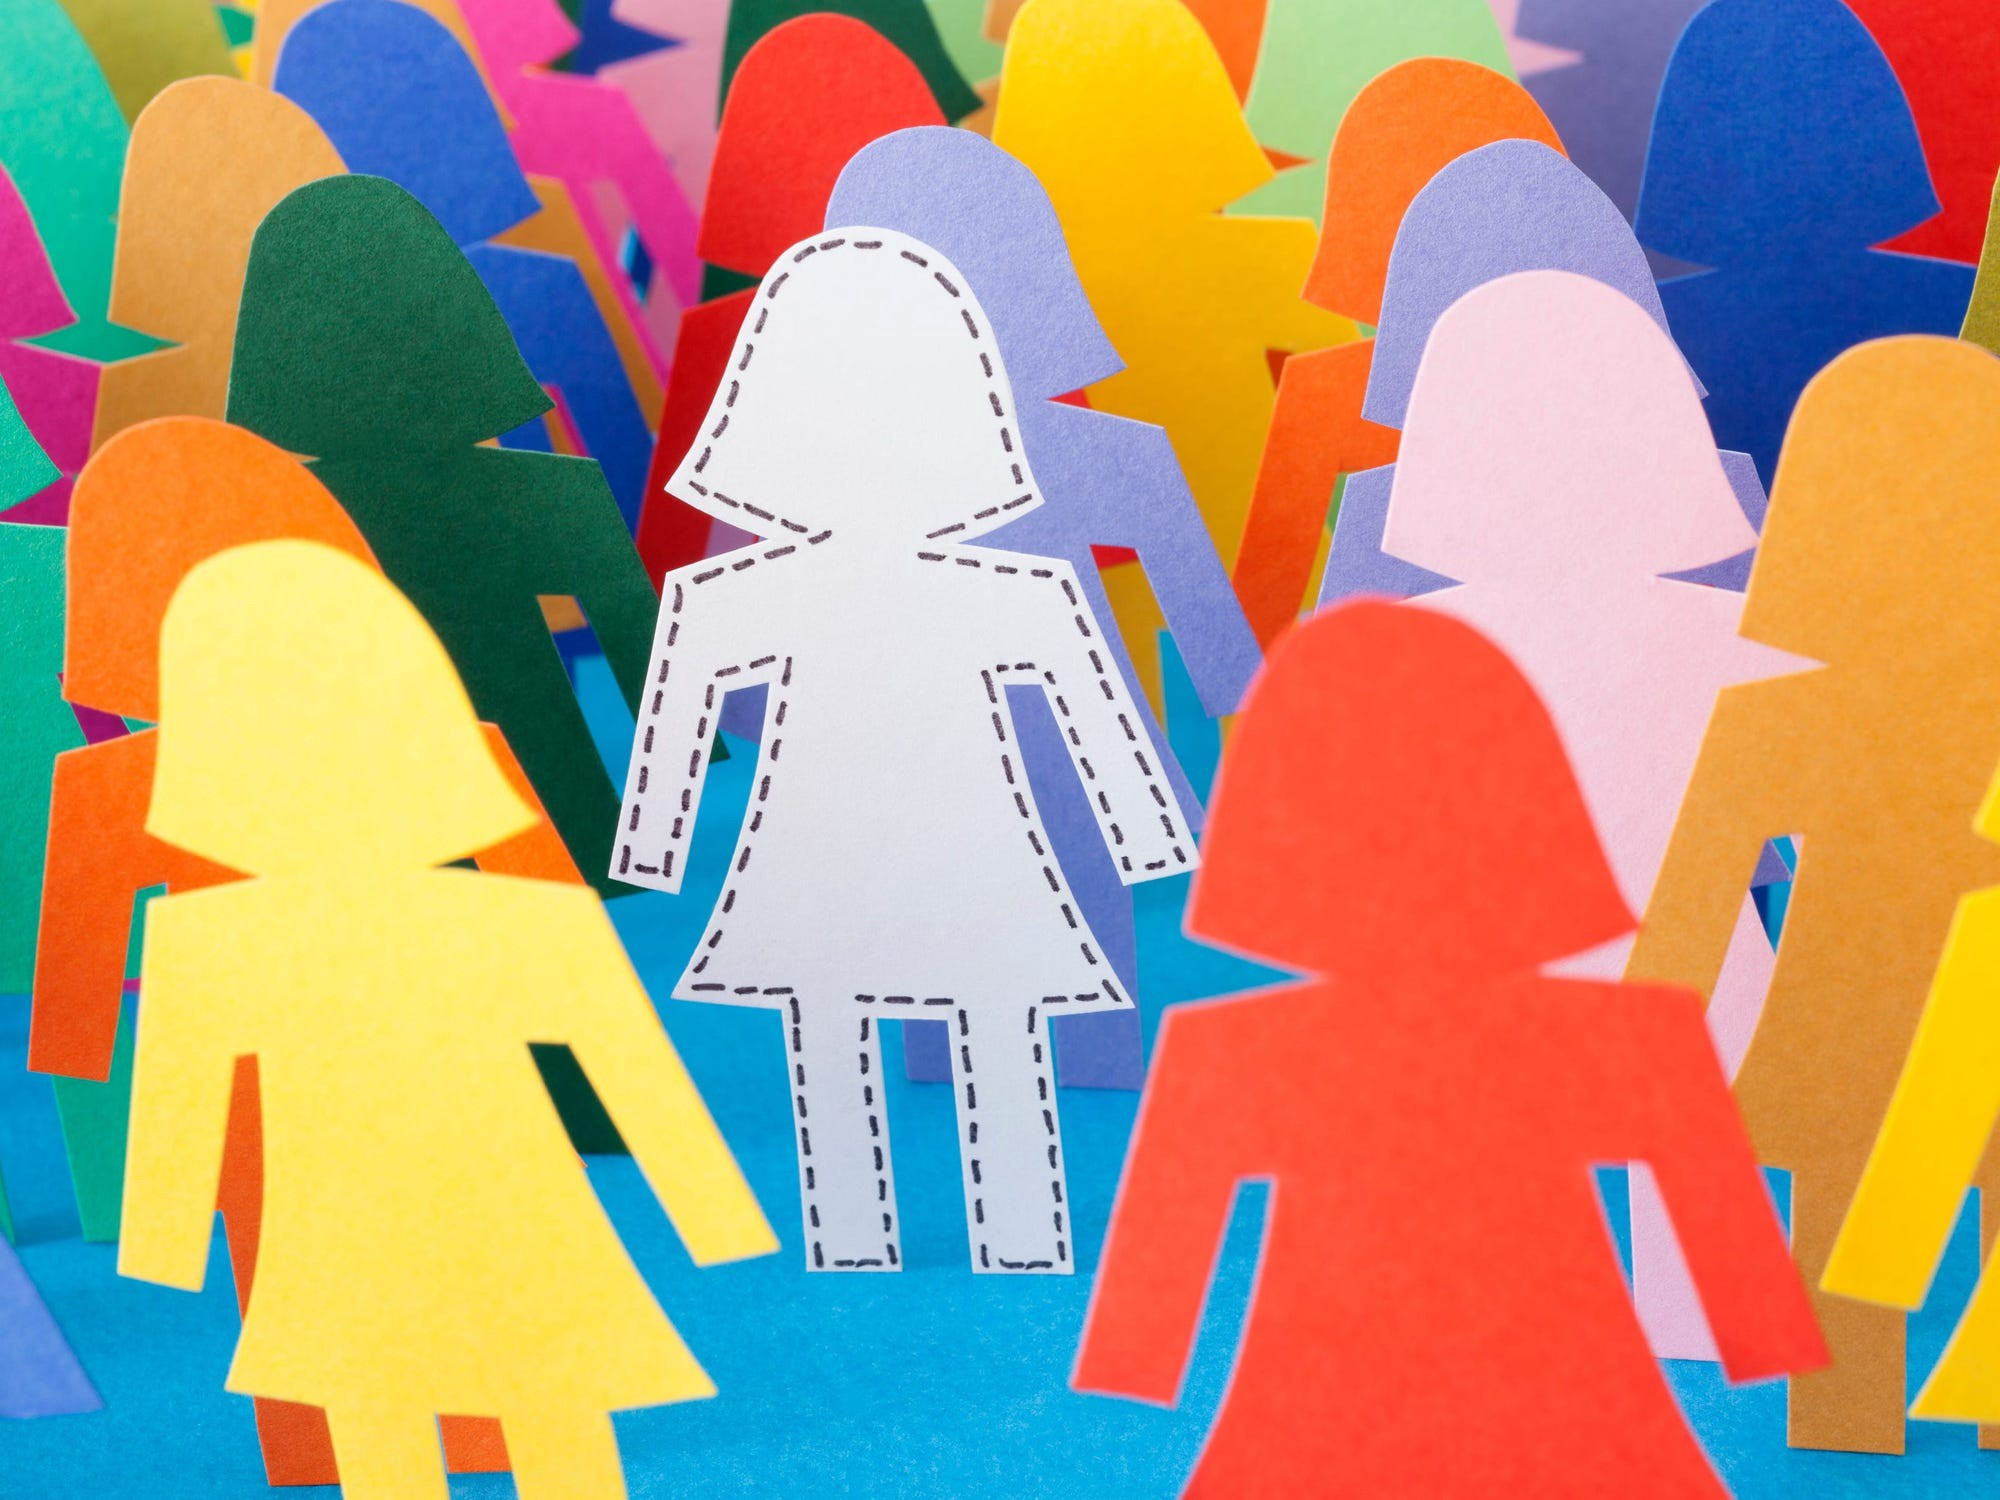 A graphic featuring colorful silhouette cutouts shaped like women.